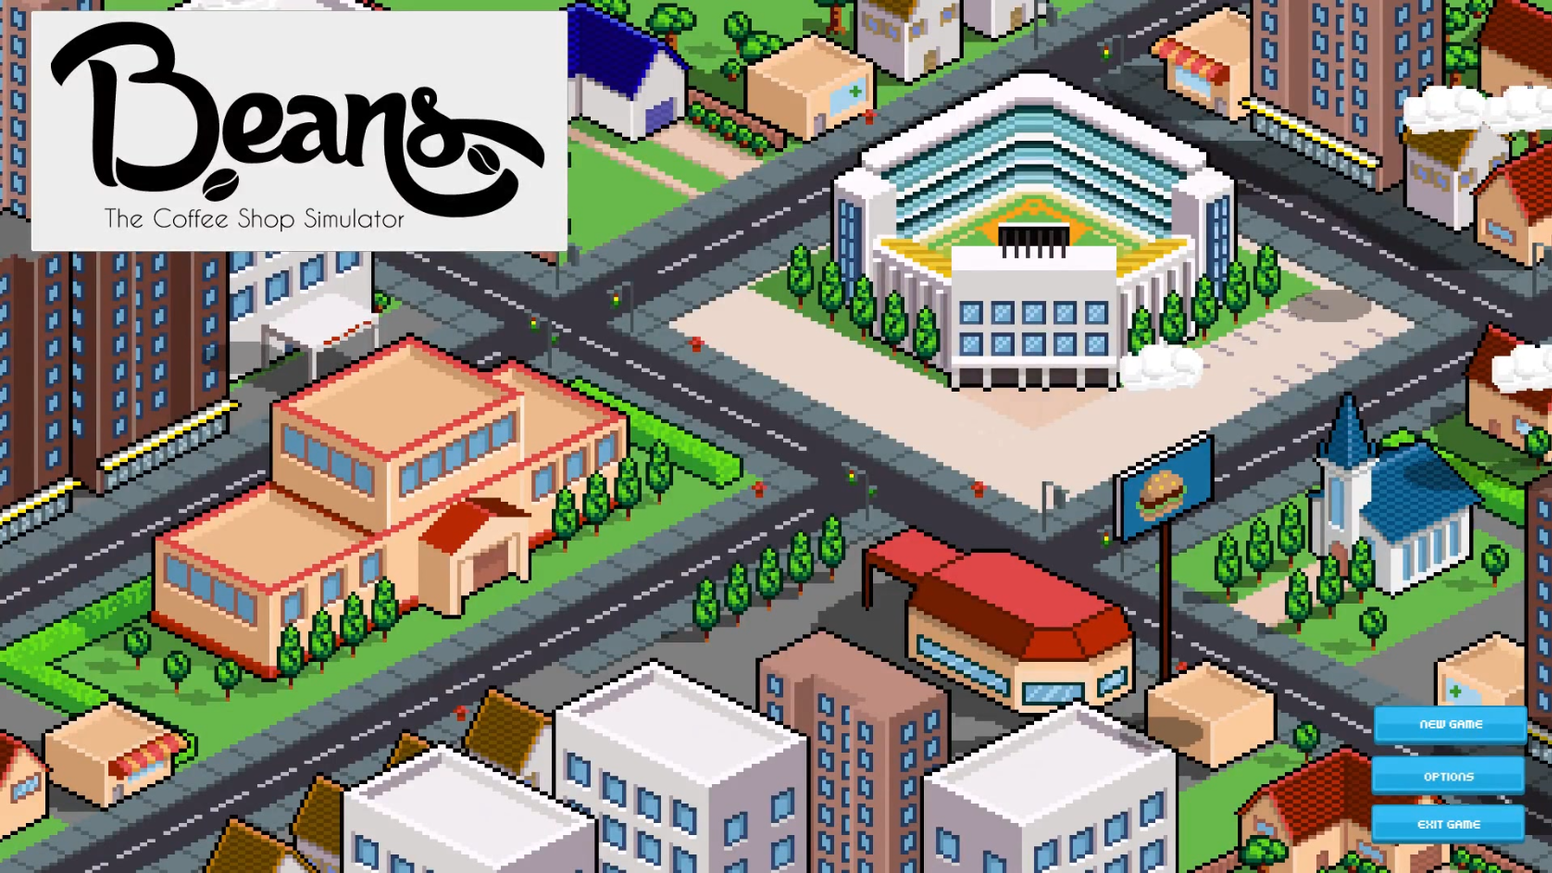 Beans is a sardonic simulation game about hipsters running a coffee shop. Fans of Tycoon games and dark humor will be right at home!